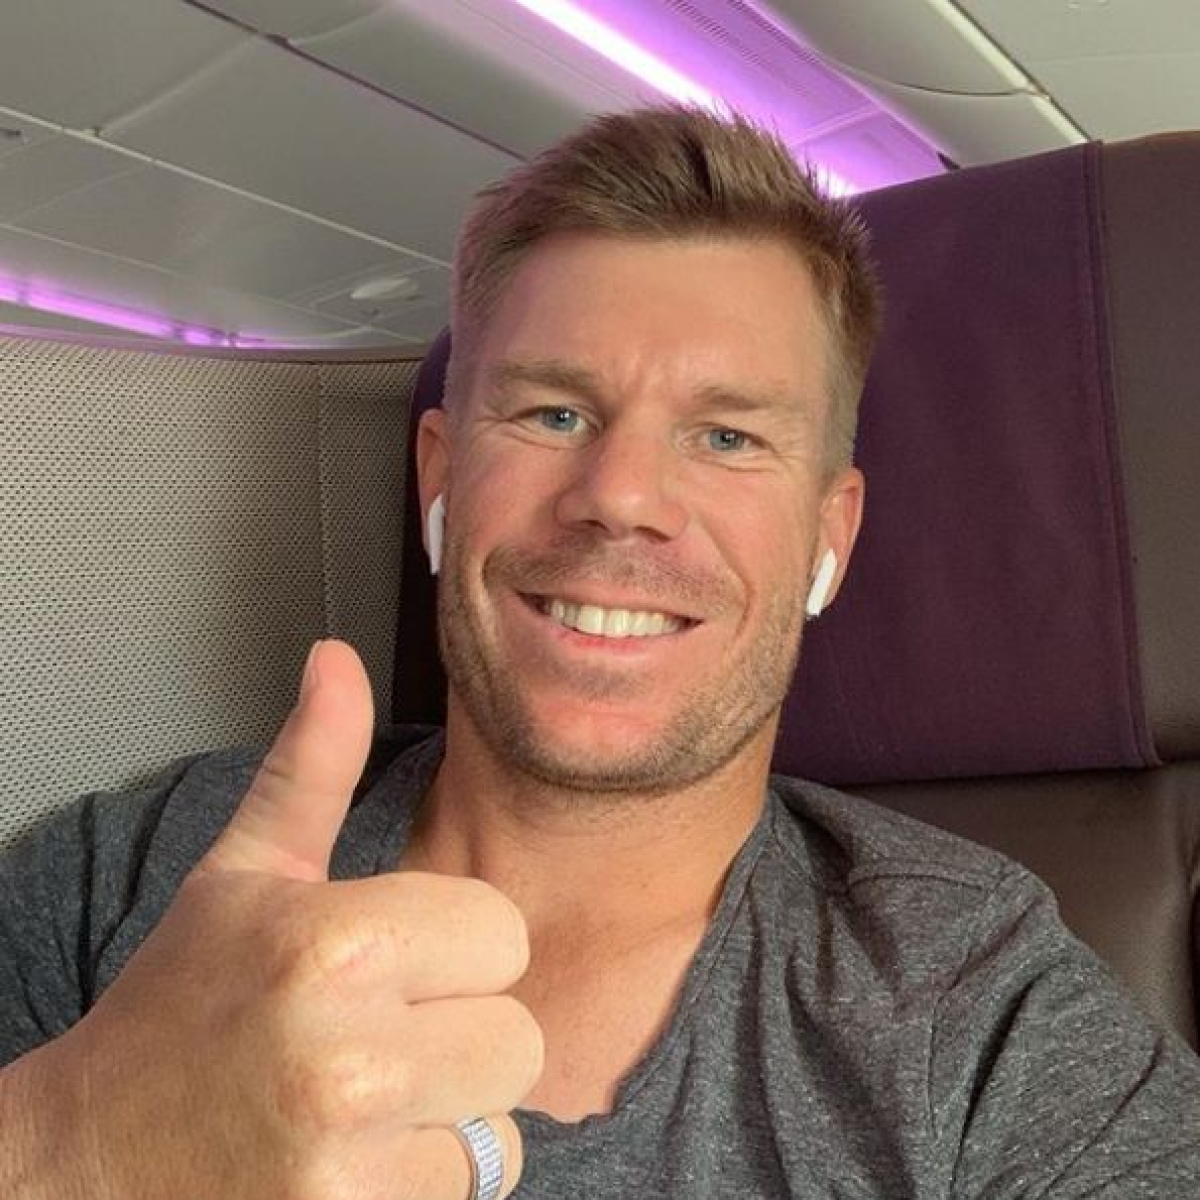 'Looking forward to seeing all our Indian fans': David Warner ahead of ODI series